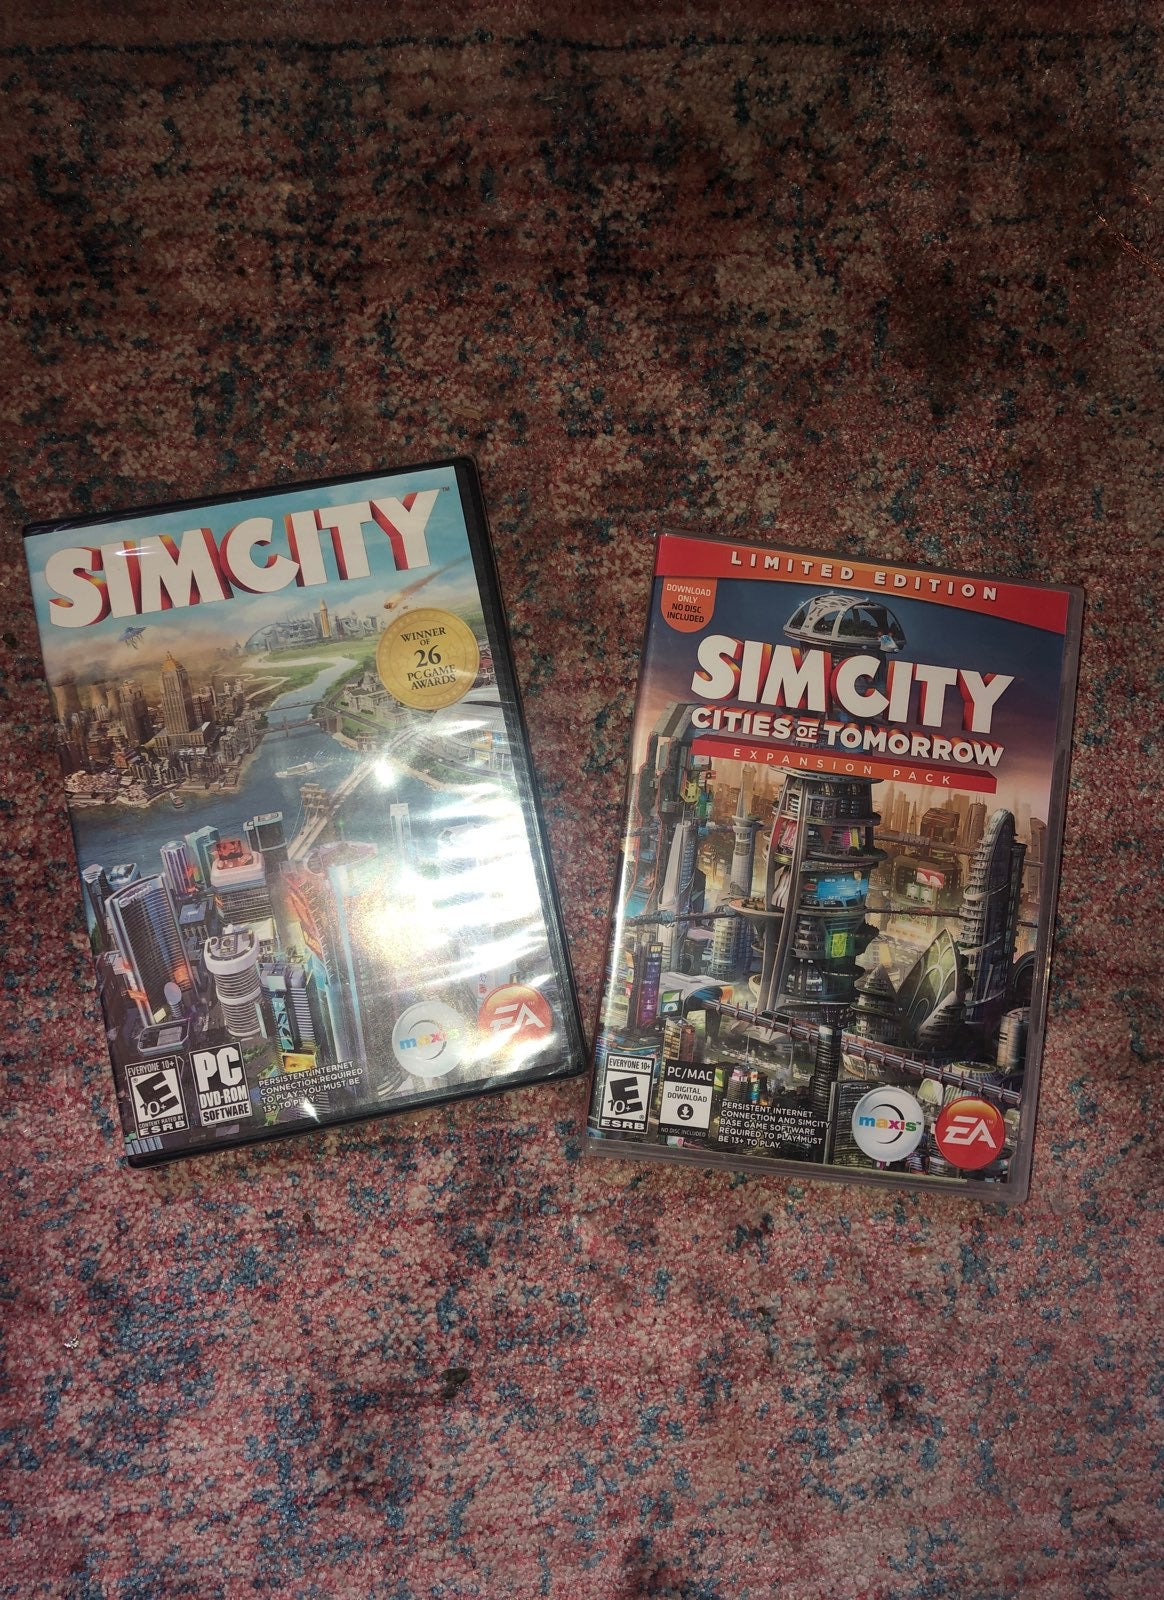 SimsCity And Simcity Cities Of Tomorrow